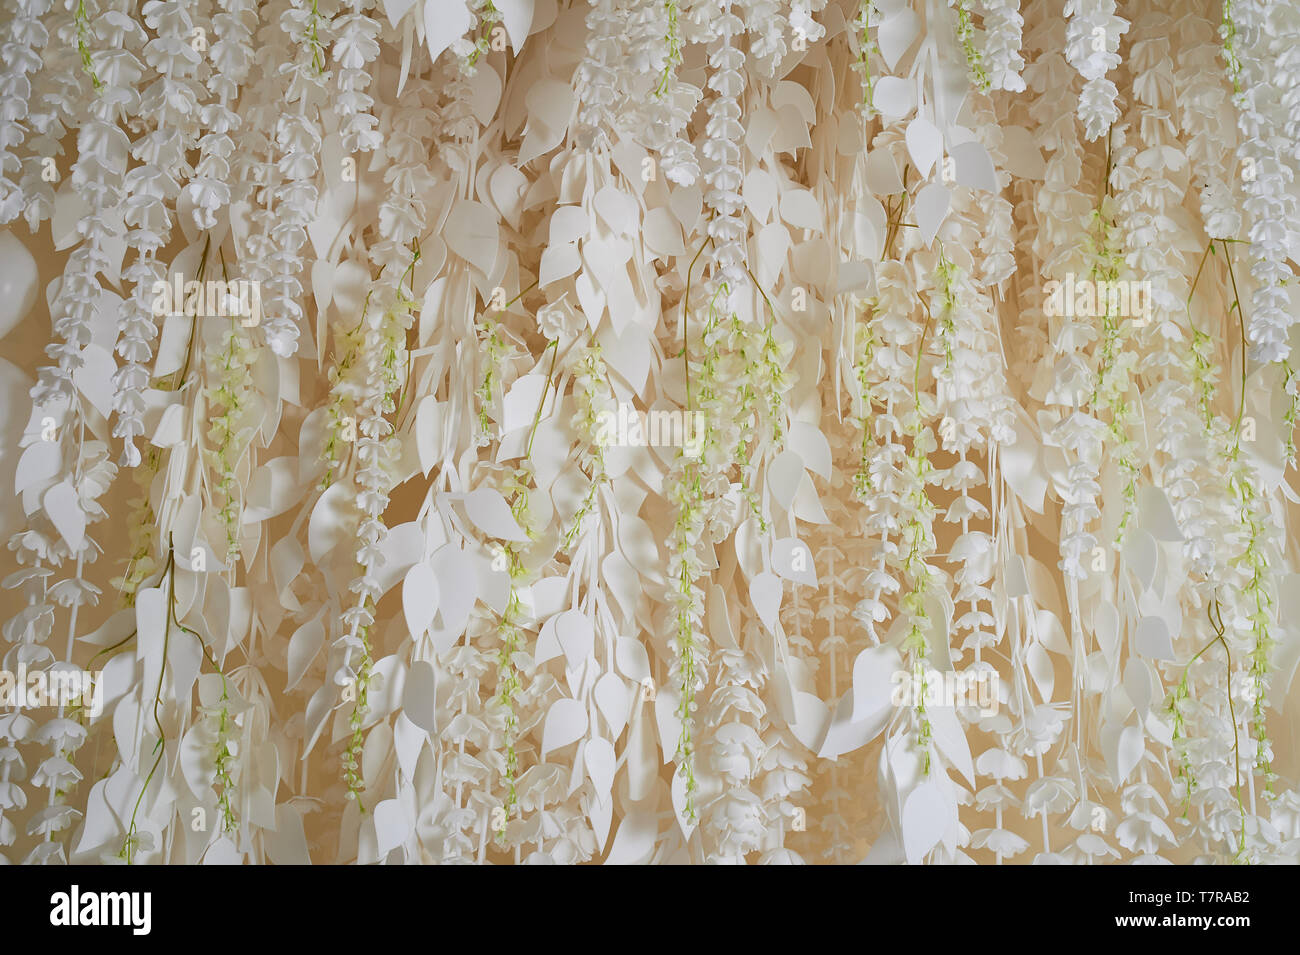 Flower garland on the wall as an element of festive, wedding decor. Light tone. - Stock Image